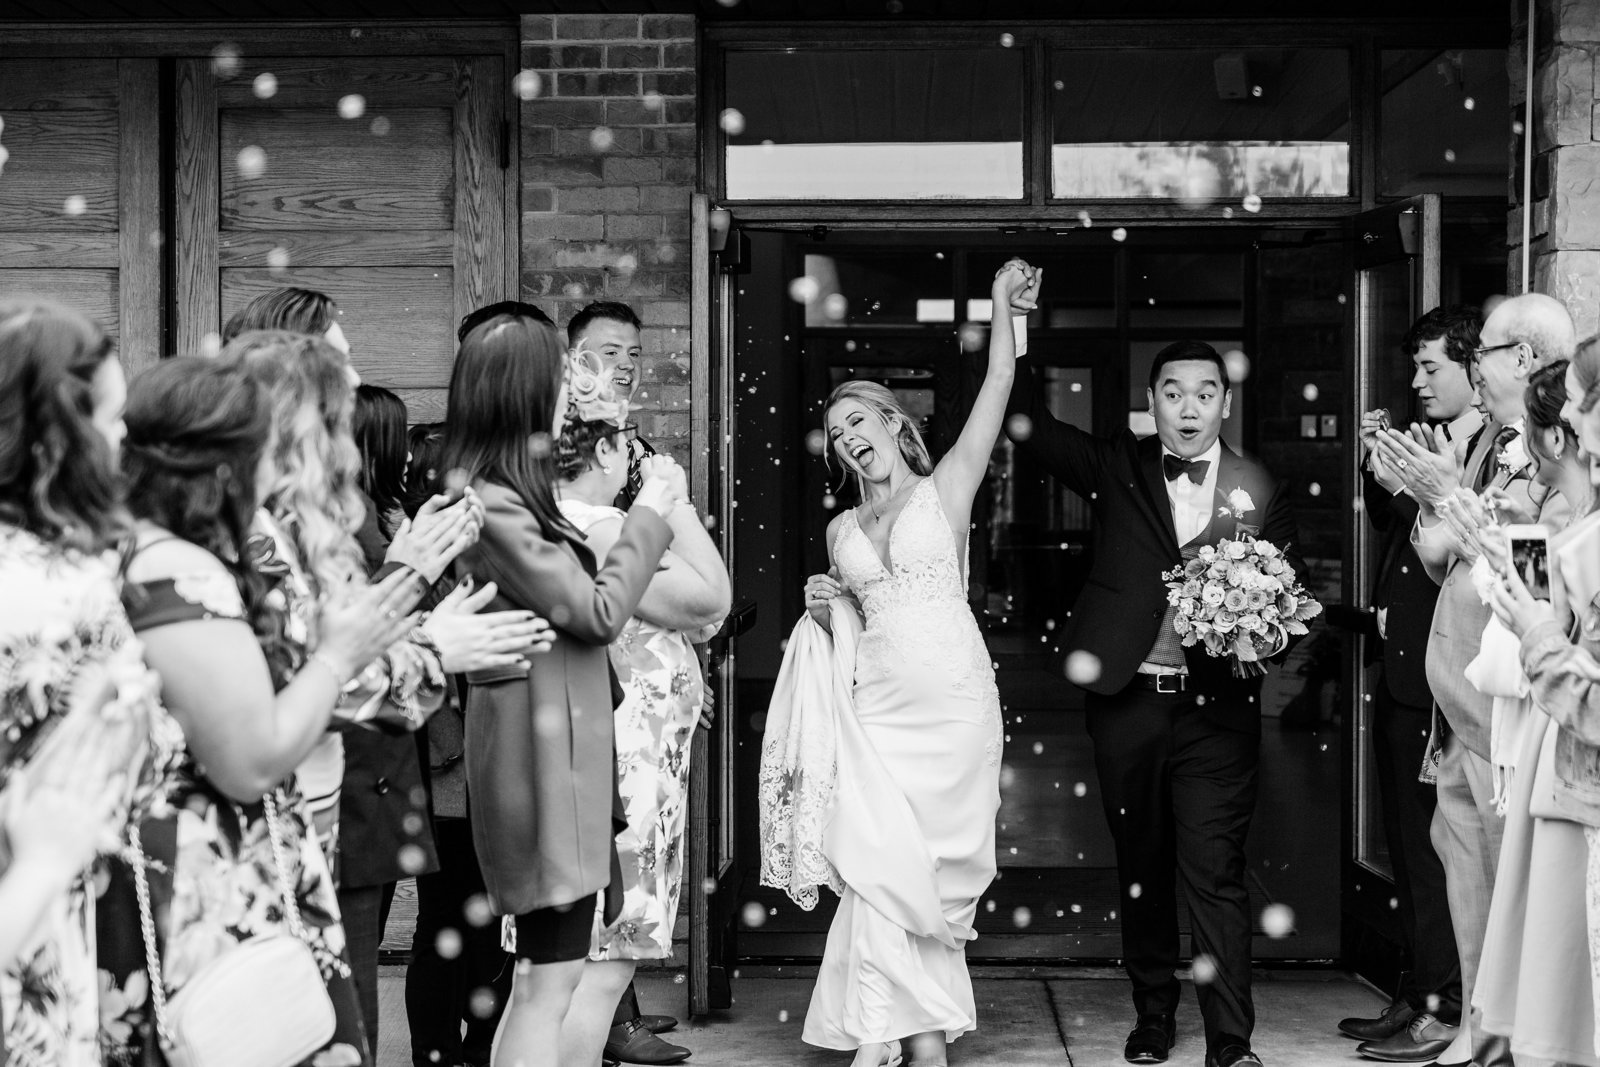 Newly-married-couple-celebrates-their-marriage-as-they-exit-their-ceremony-with-friends-and-family-cheering-and-blowing-bubbles